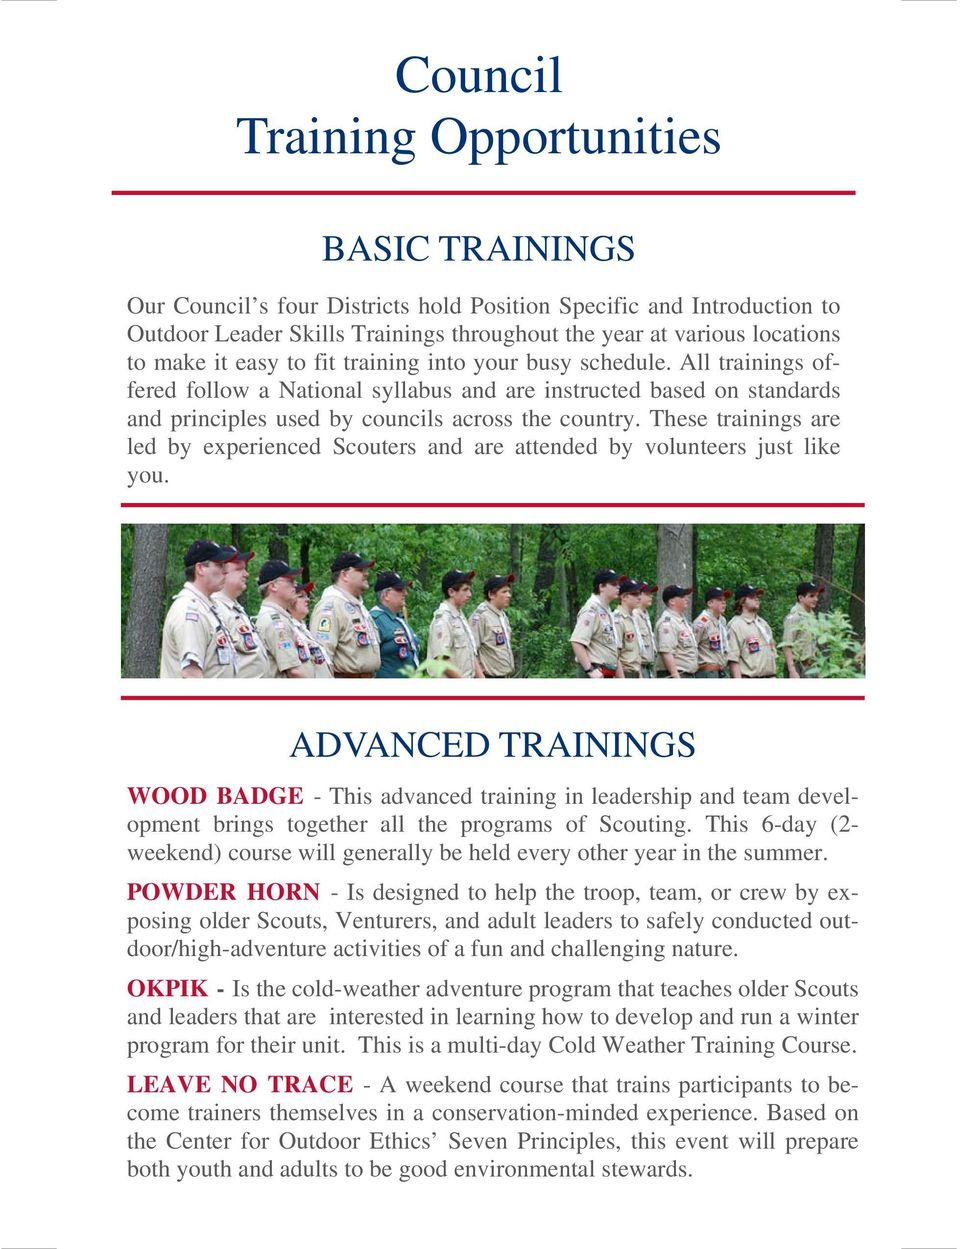 These trainings are led by experienced Scouters and are attended by volunteers just like you.